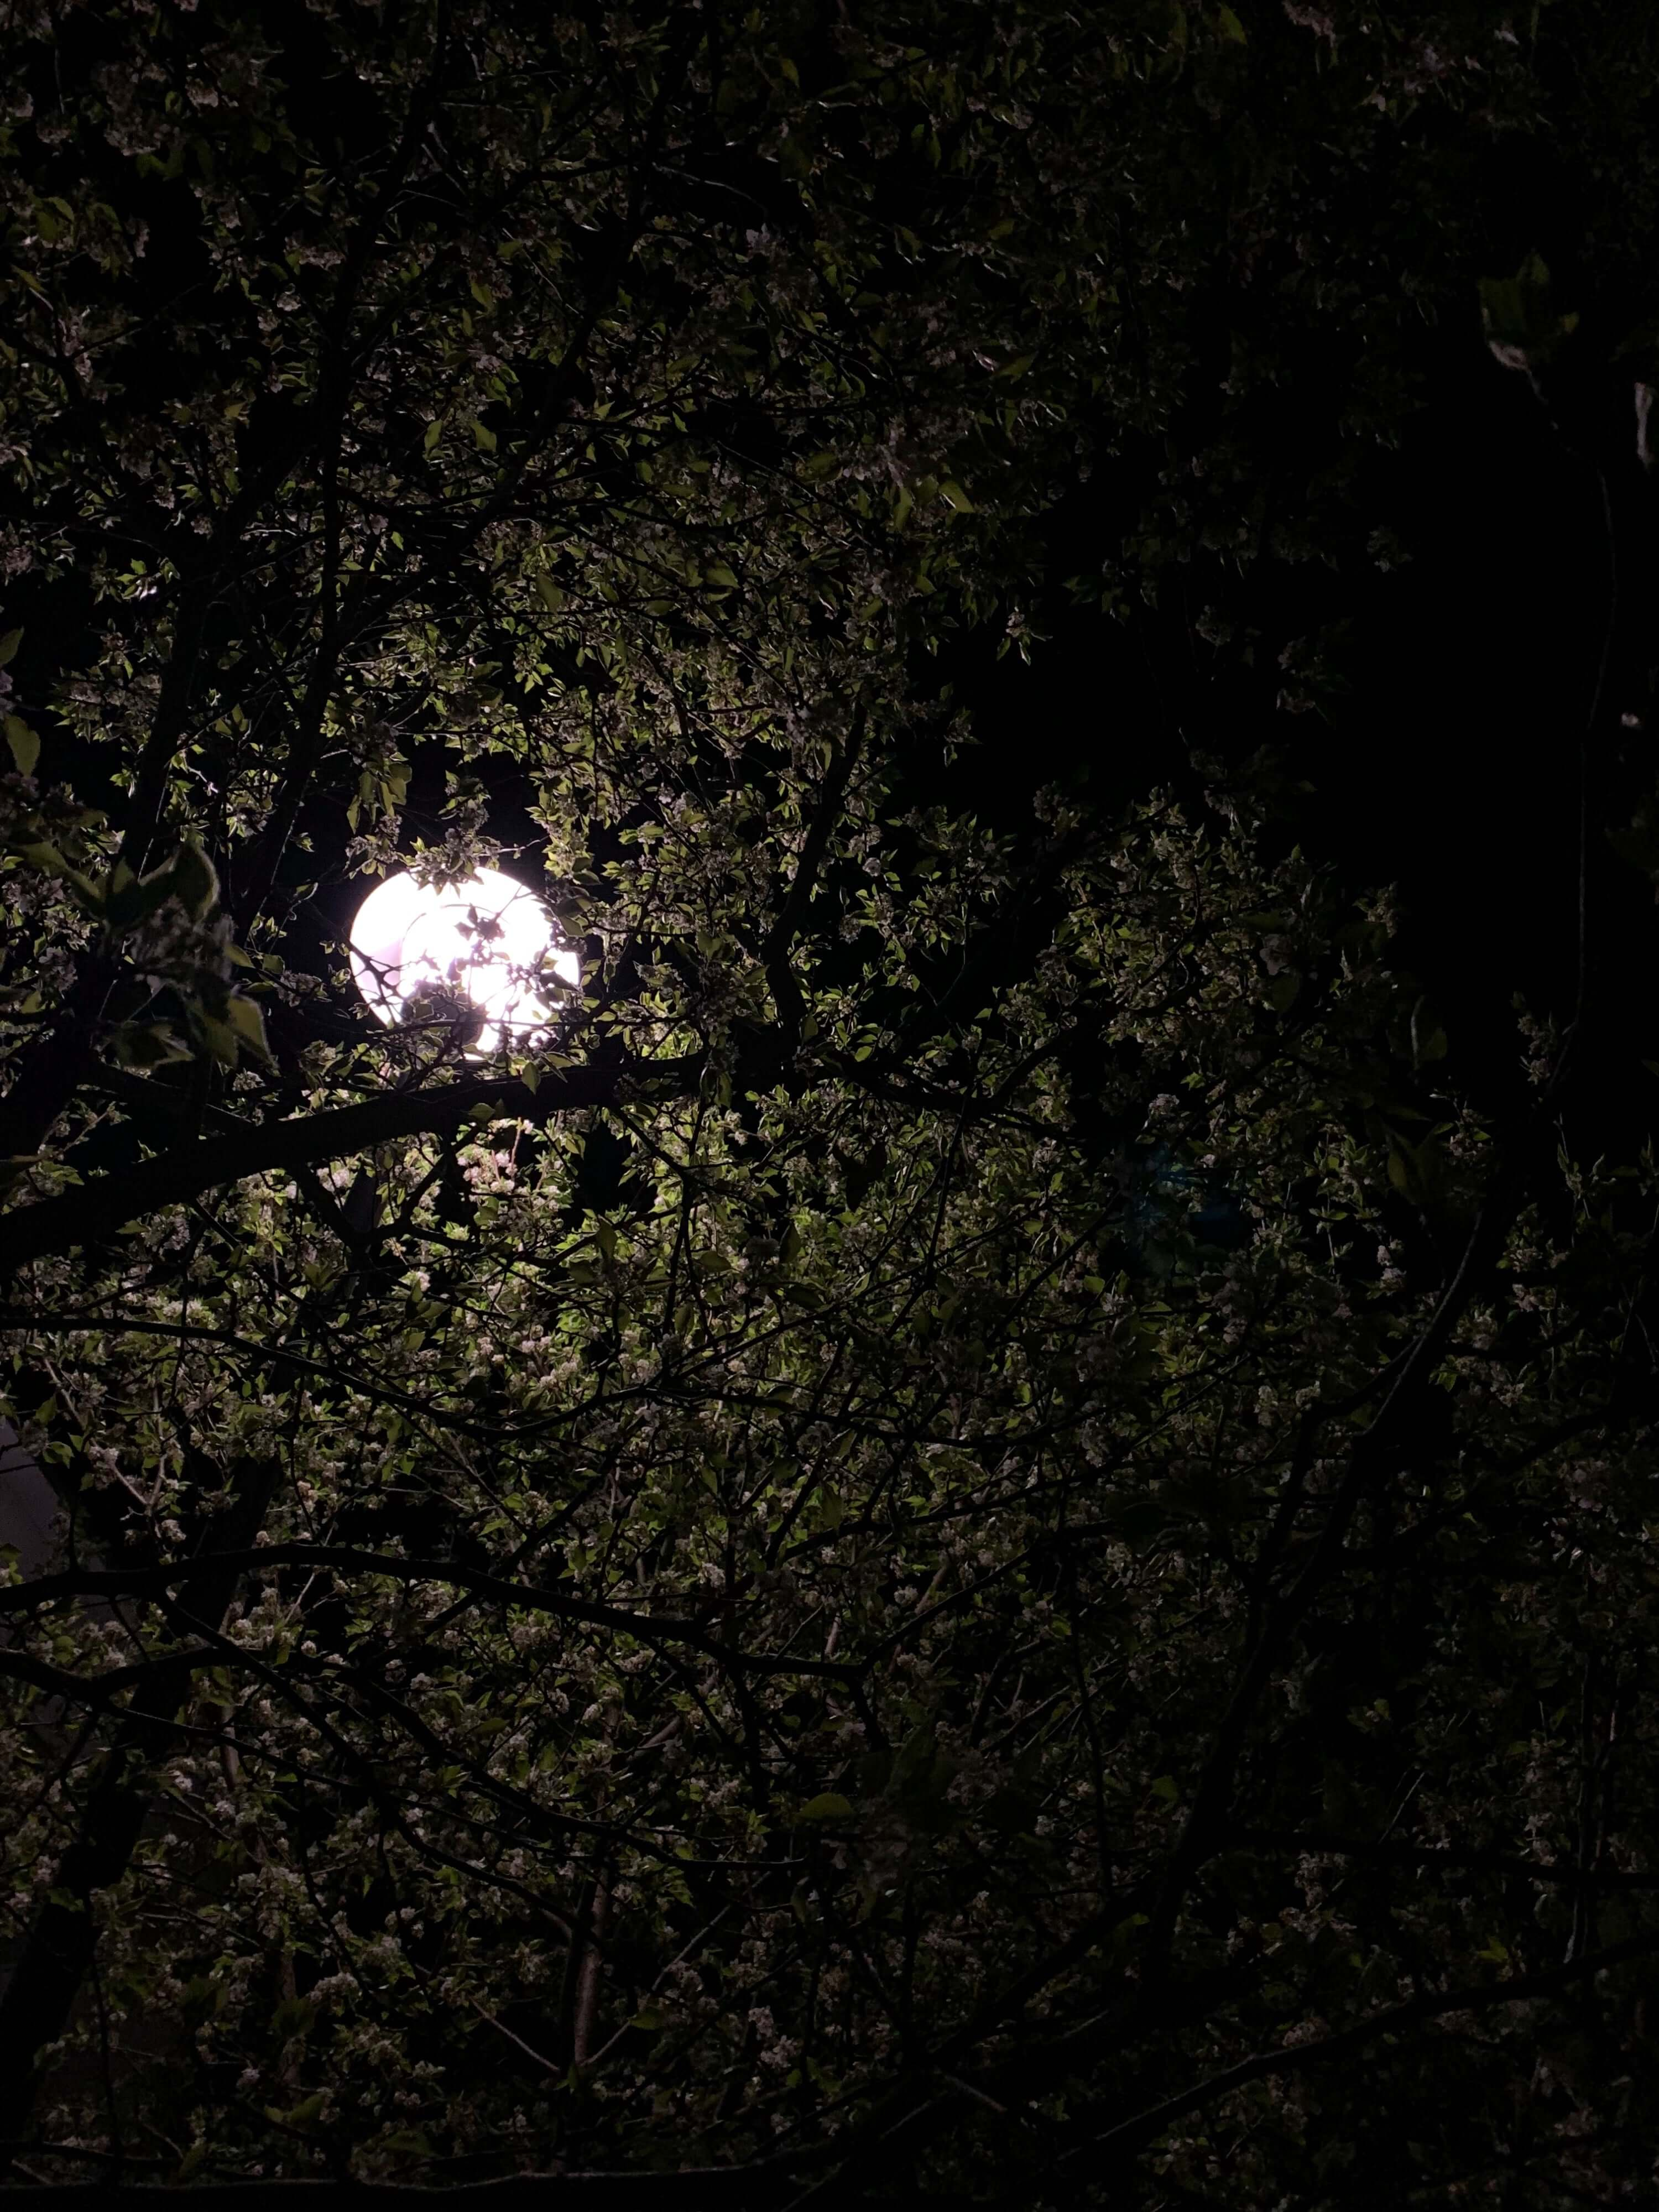 photo of a street light with flowering trees around